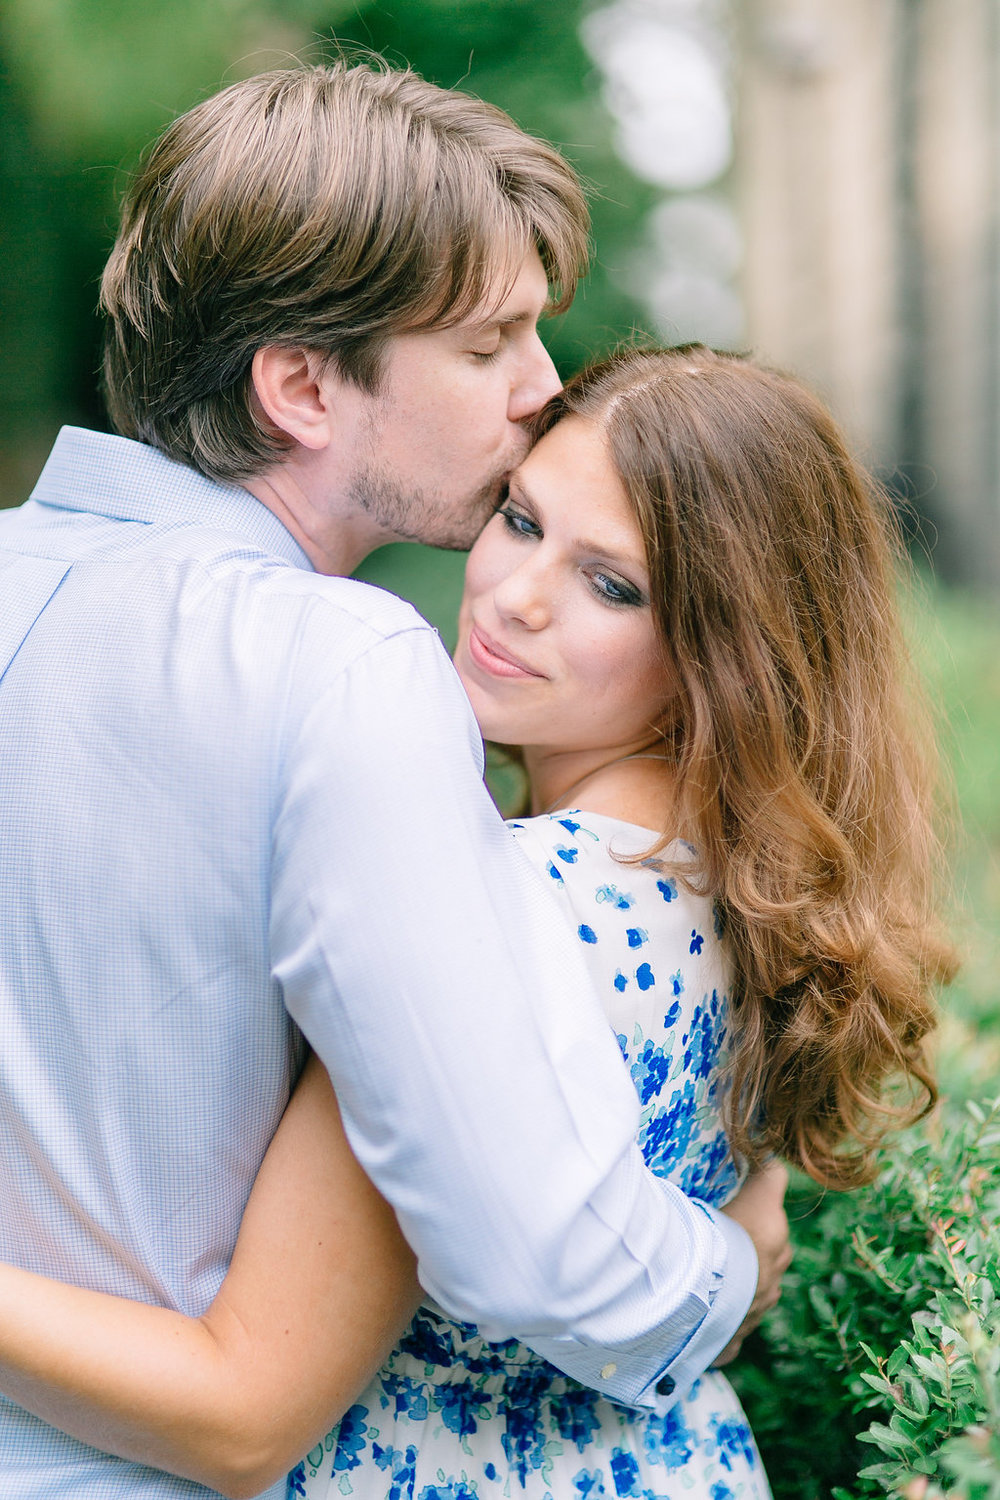 Mirror-Mirror-muah-engagement-airbrush-makeup-charleston-engagement-photos-julianne-brad-047.jpg